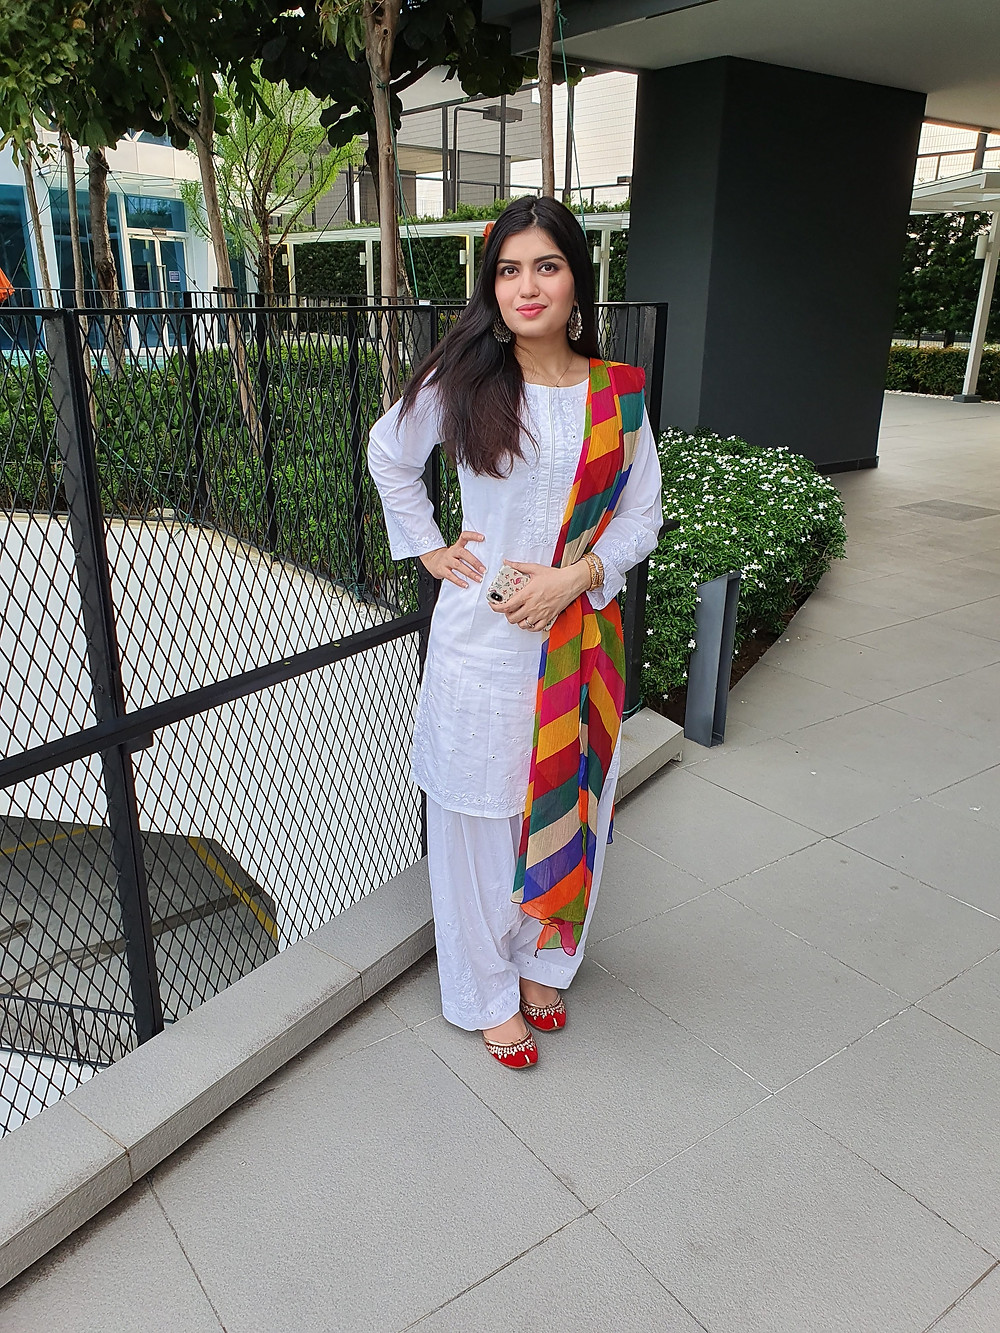 Fatima the ordinary style girl ready for iftaar party 8 may 2020